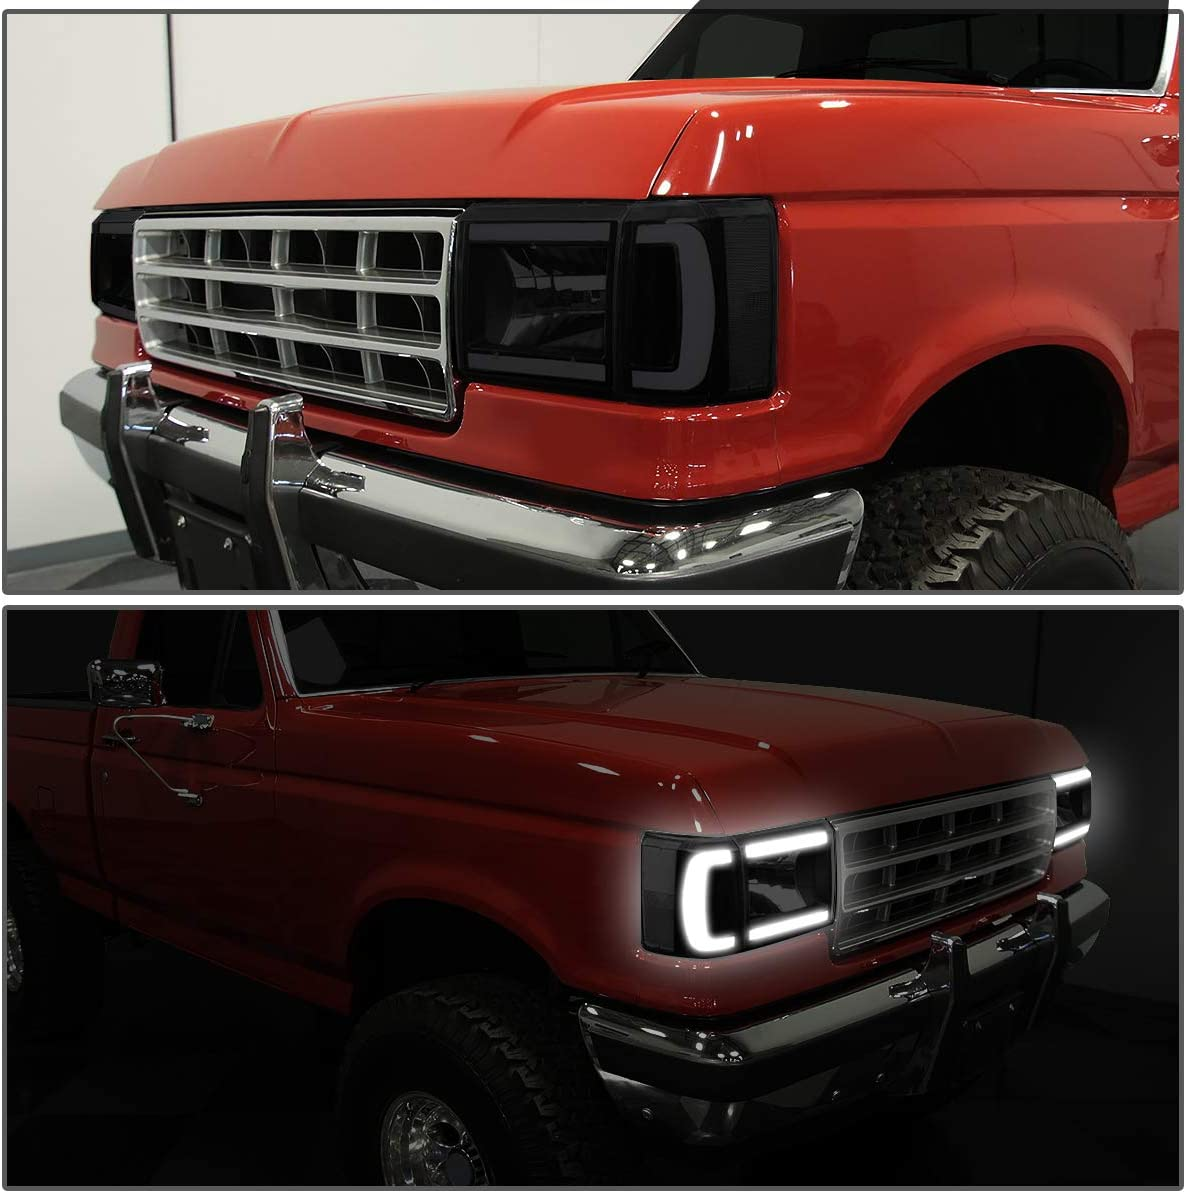 DNA Motoring HL-LB-F15087-BK-SM-CL1 Pair LED DRL Headlight Corner Lamps For 1987-1991 Ford Bronco F-150 F-250 F-350,Black Smoked Clear